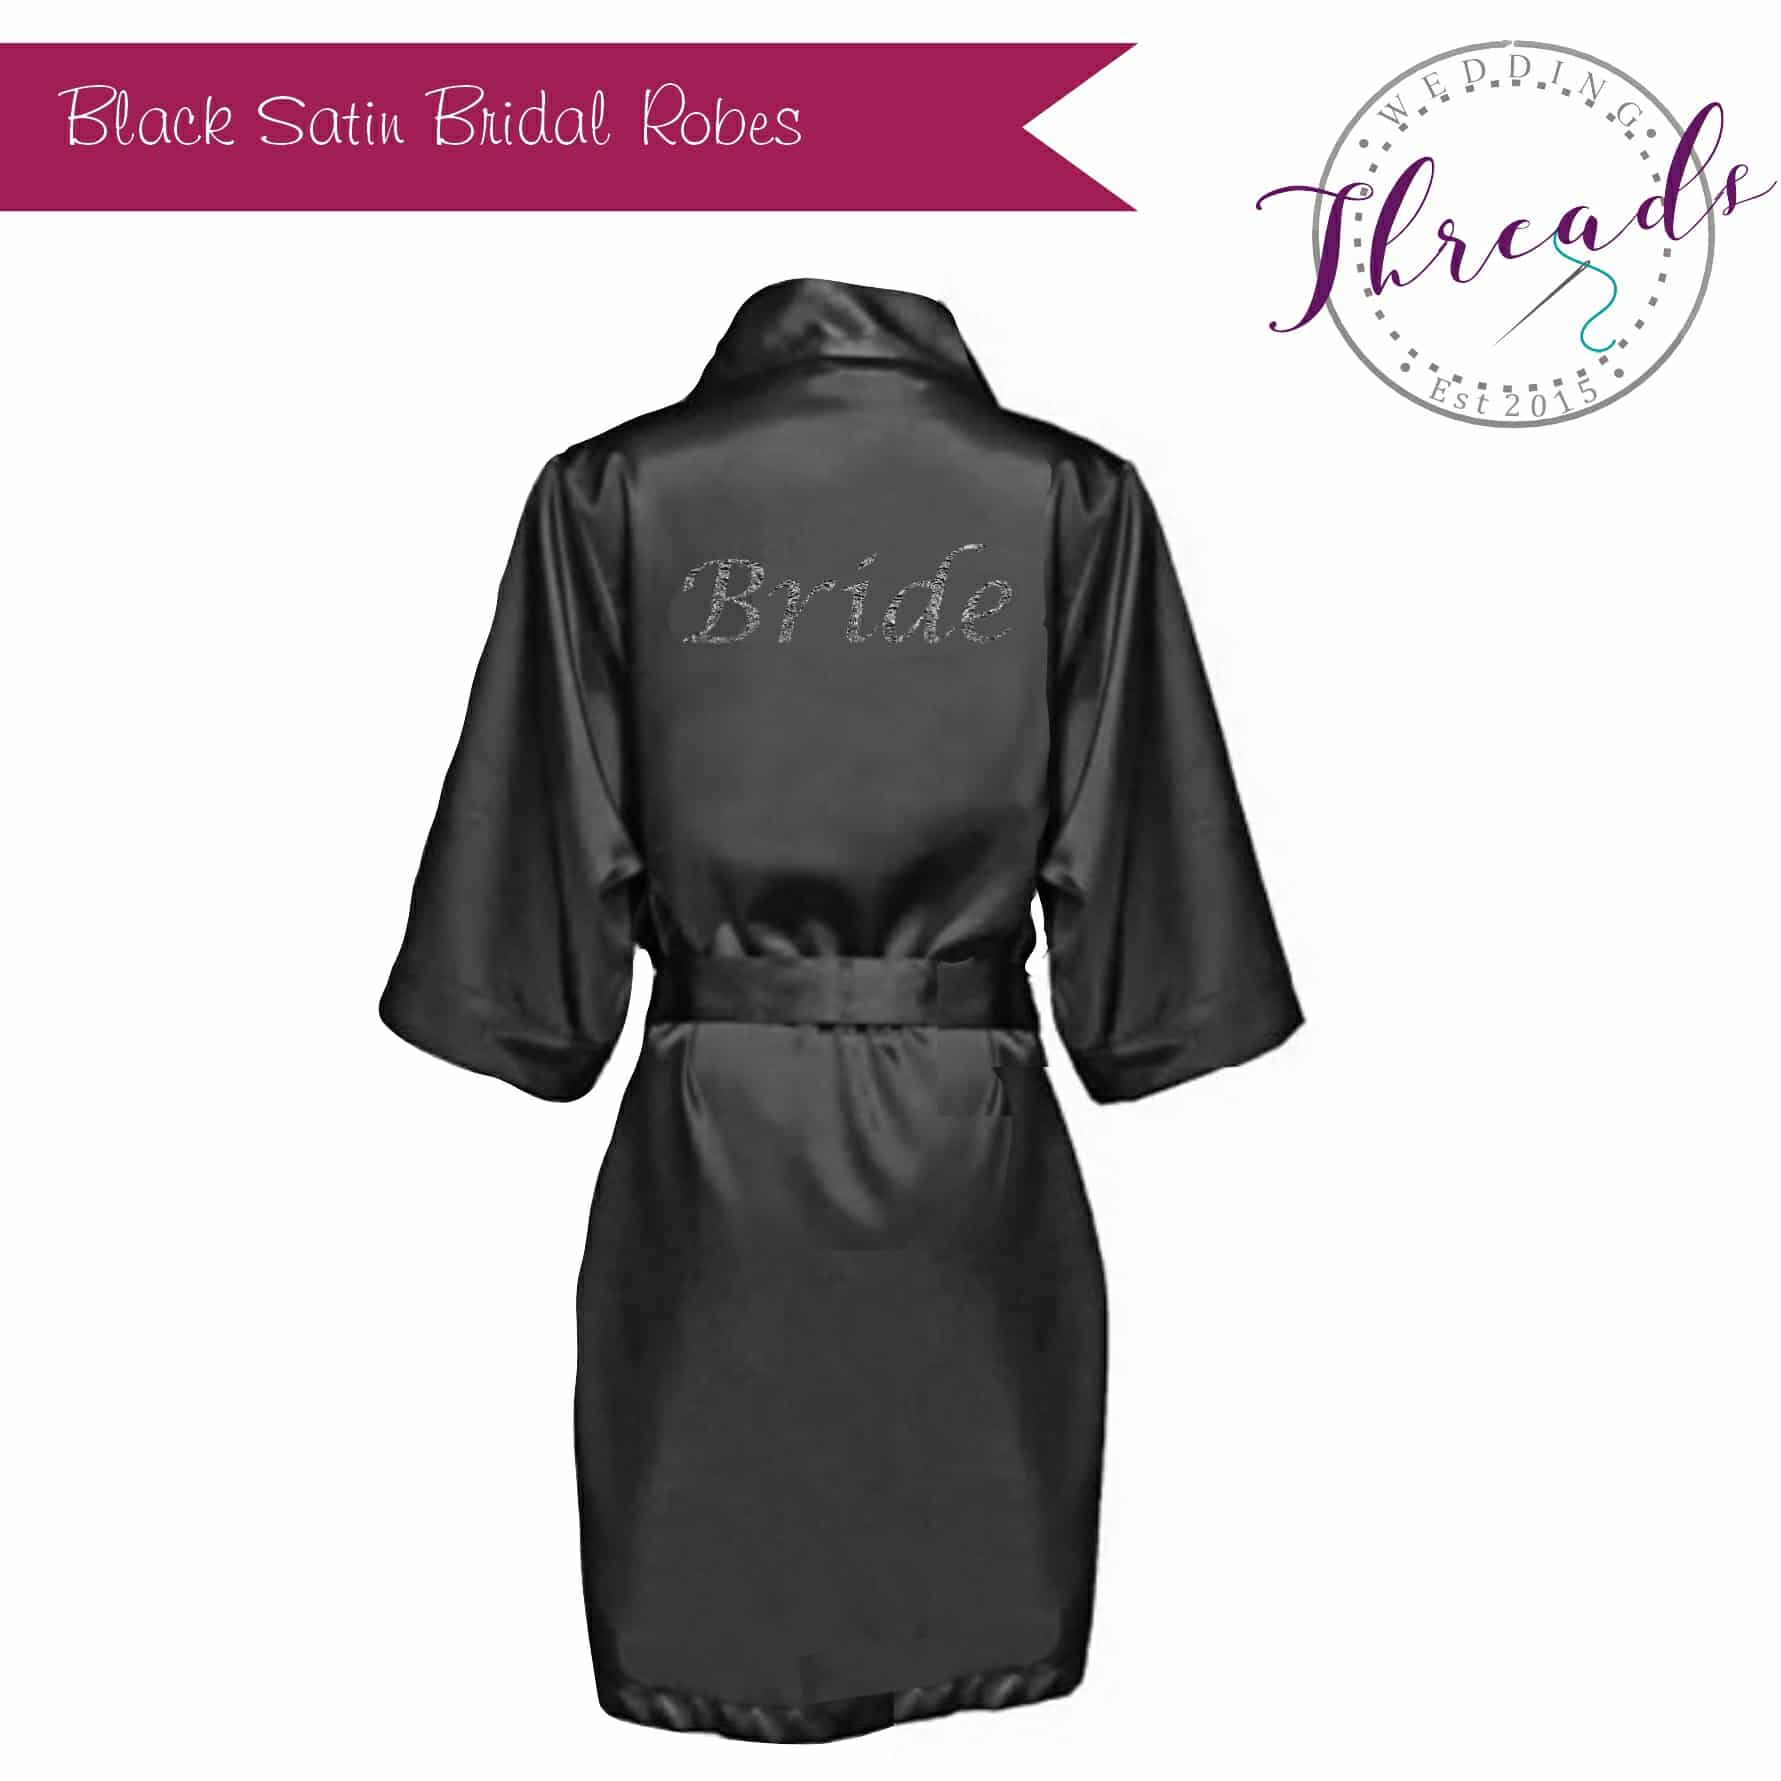 Black satin dressing gown